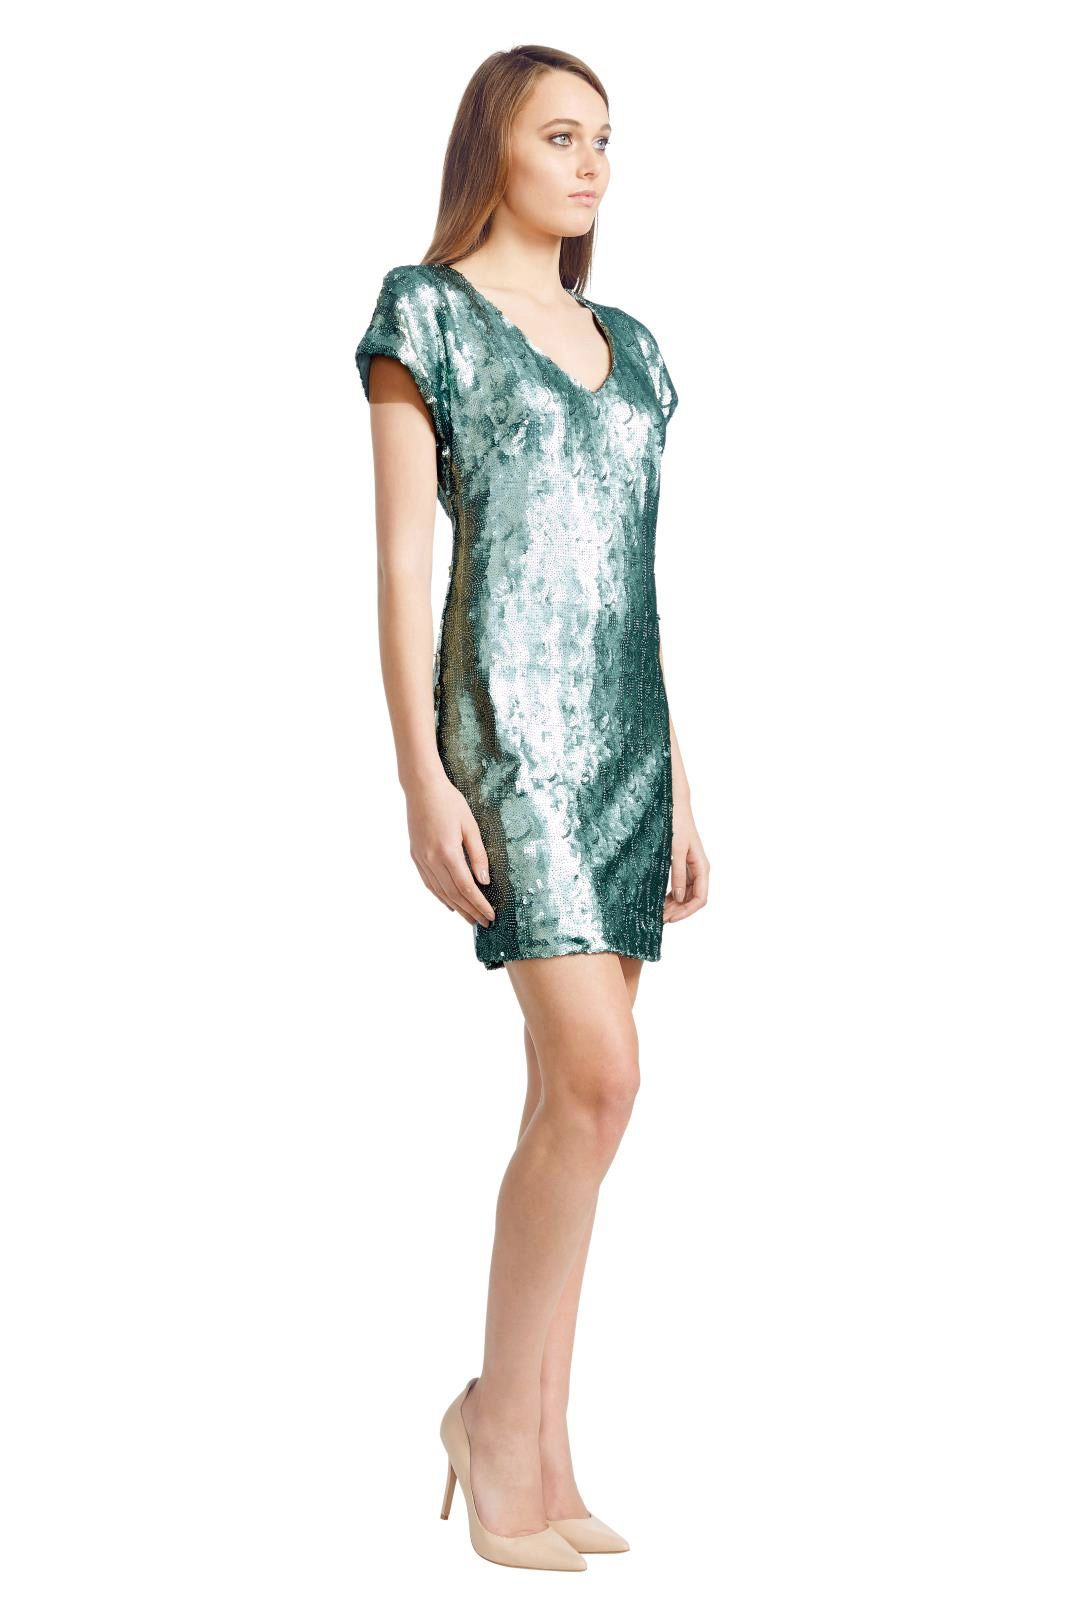 Wayne Cooper - Mermaid Shift Dress - Green - Side